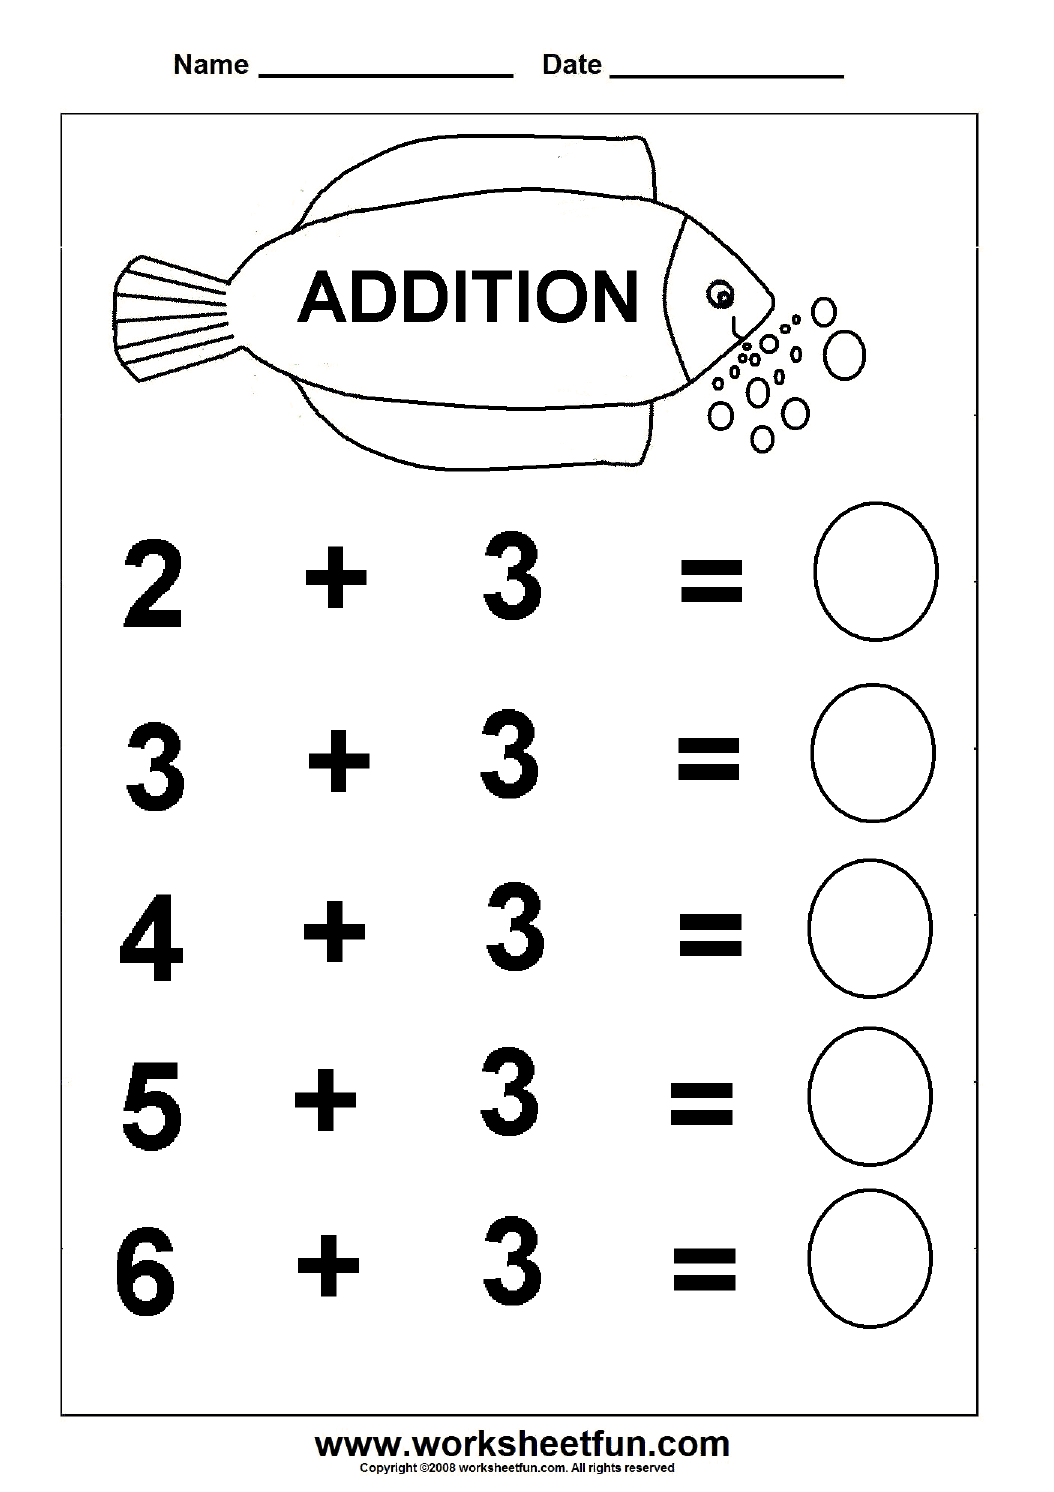 Simple Fraction Free Worksheet For Kindergarten